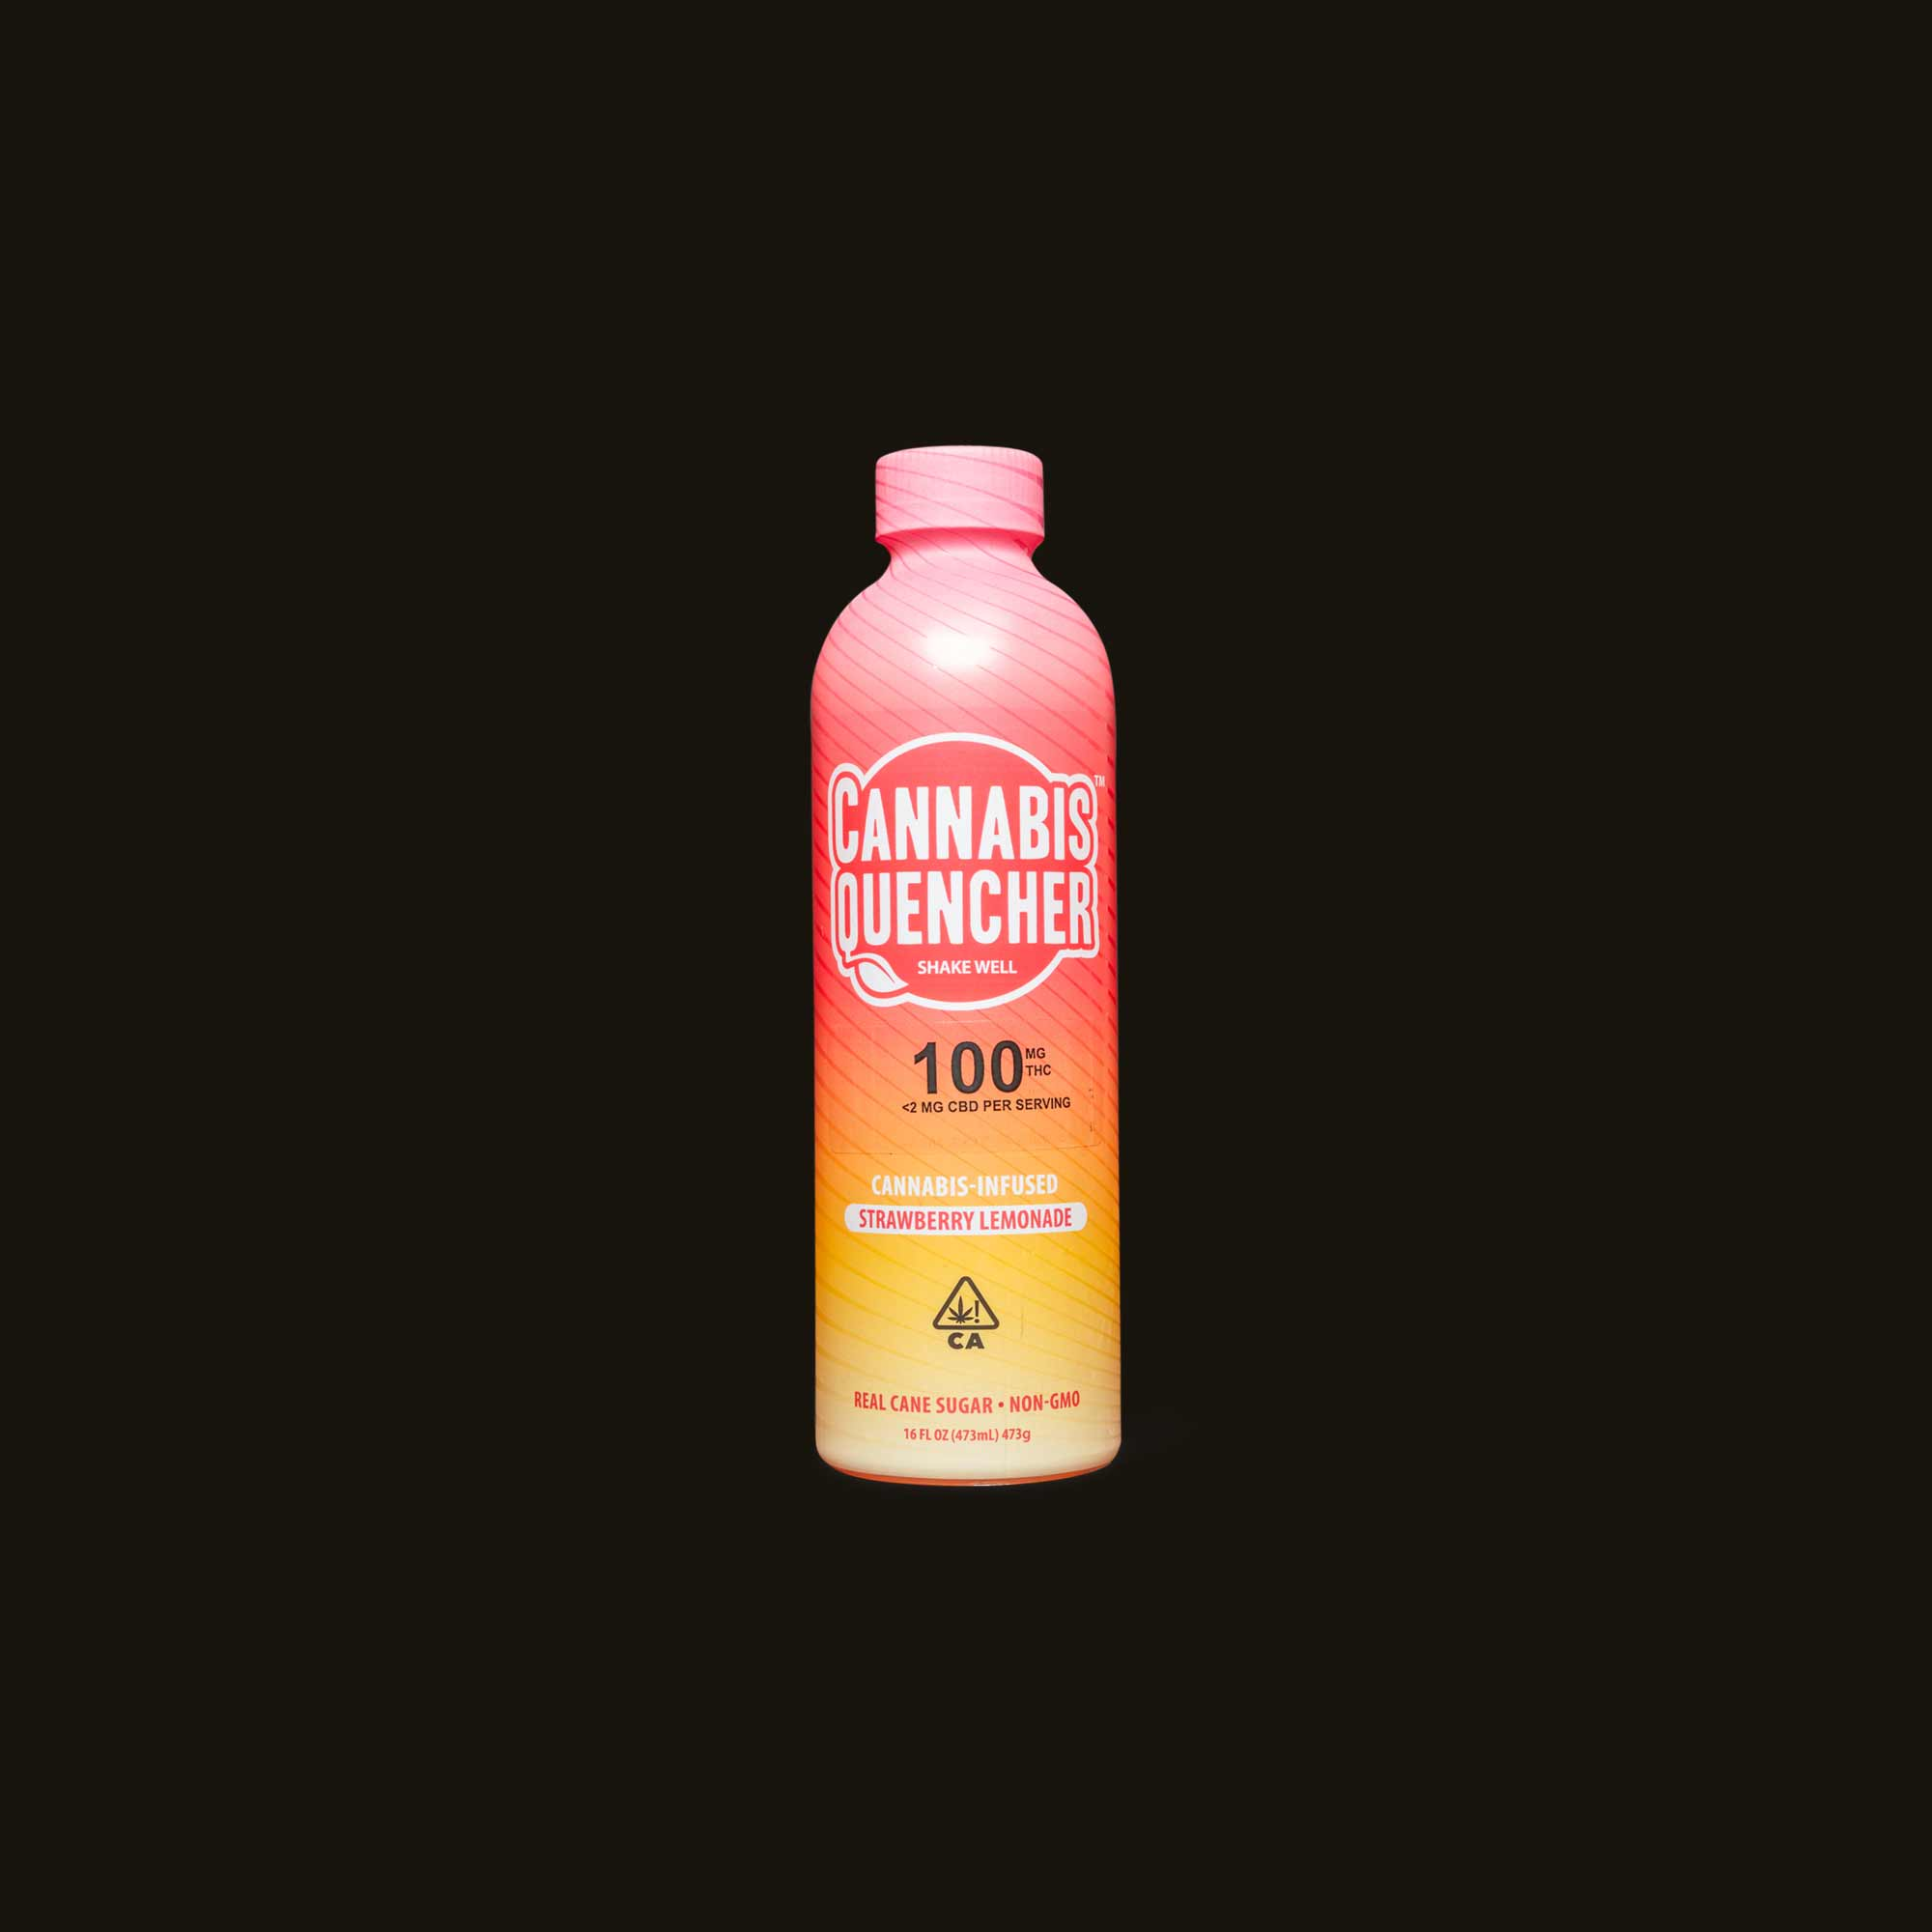 Cannabis Quencher Strawberry Lemonade